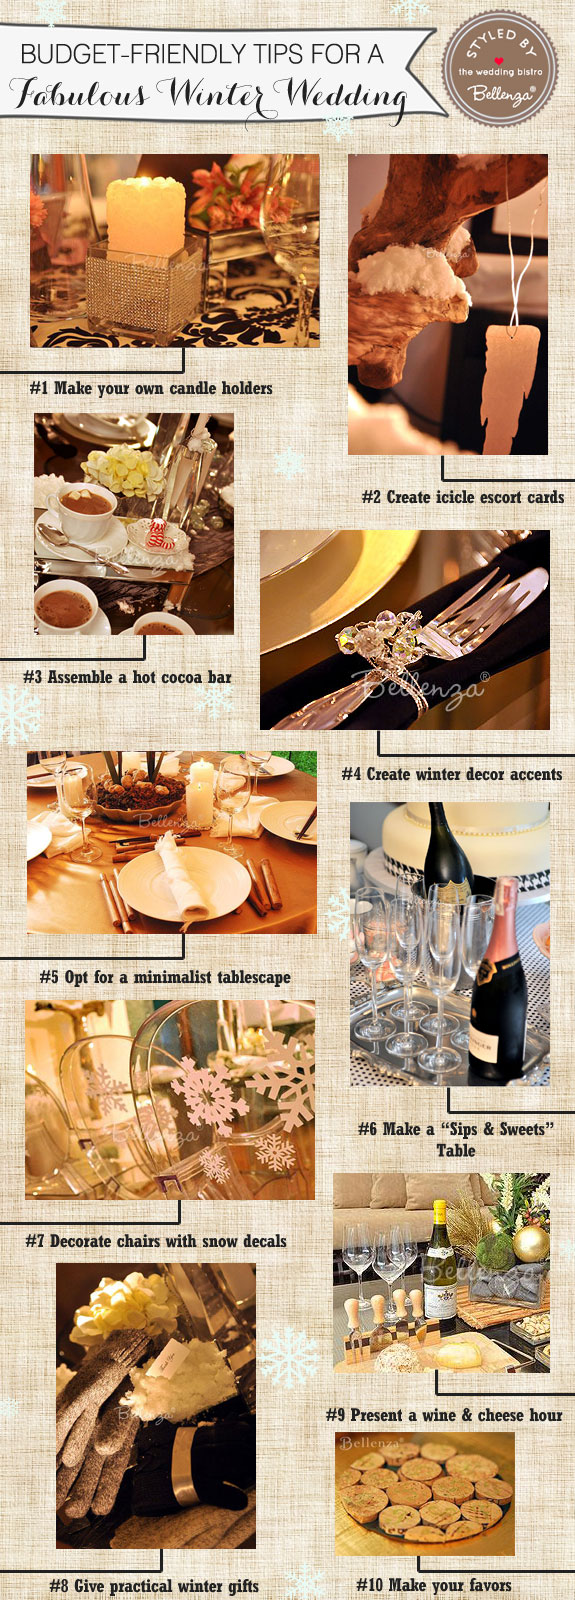 10 budget-friendly winter wedding tips and ideas from Bellenza